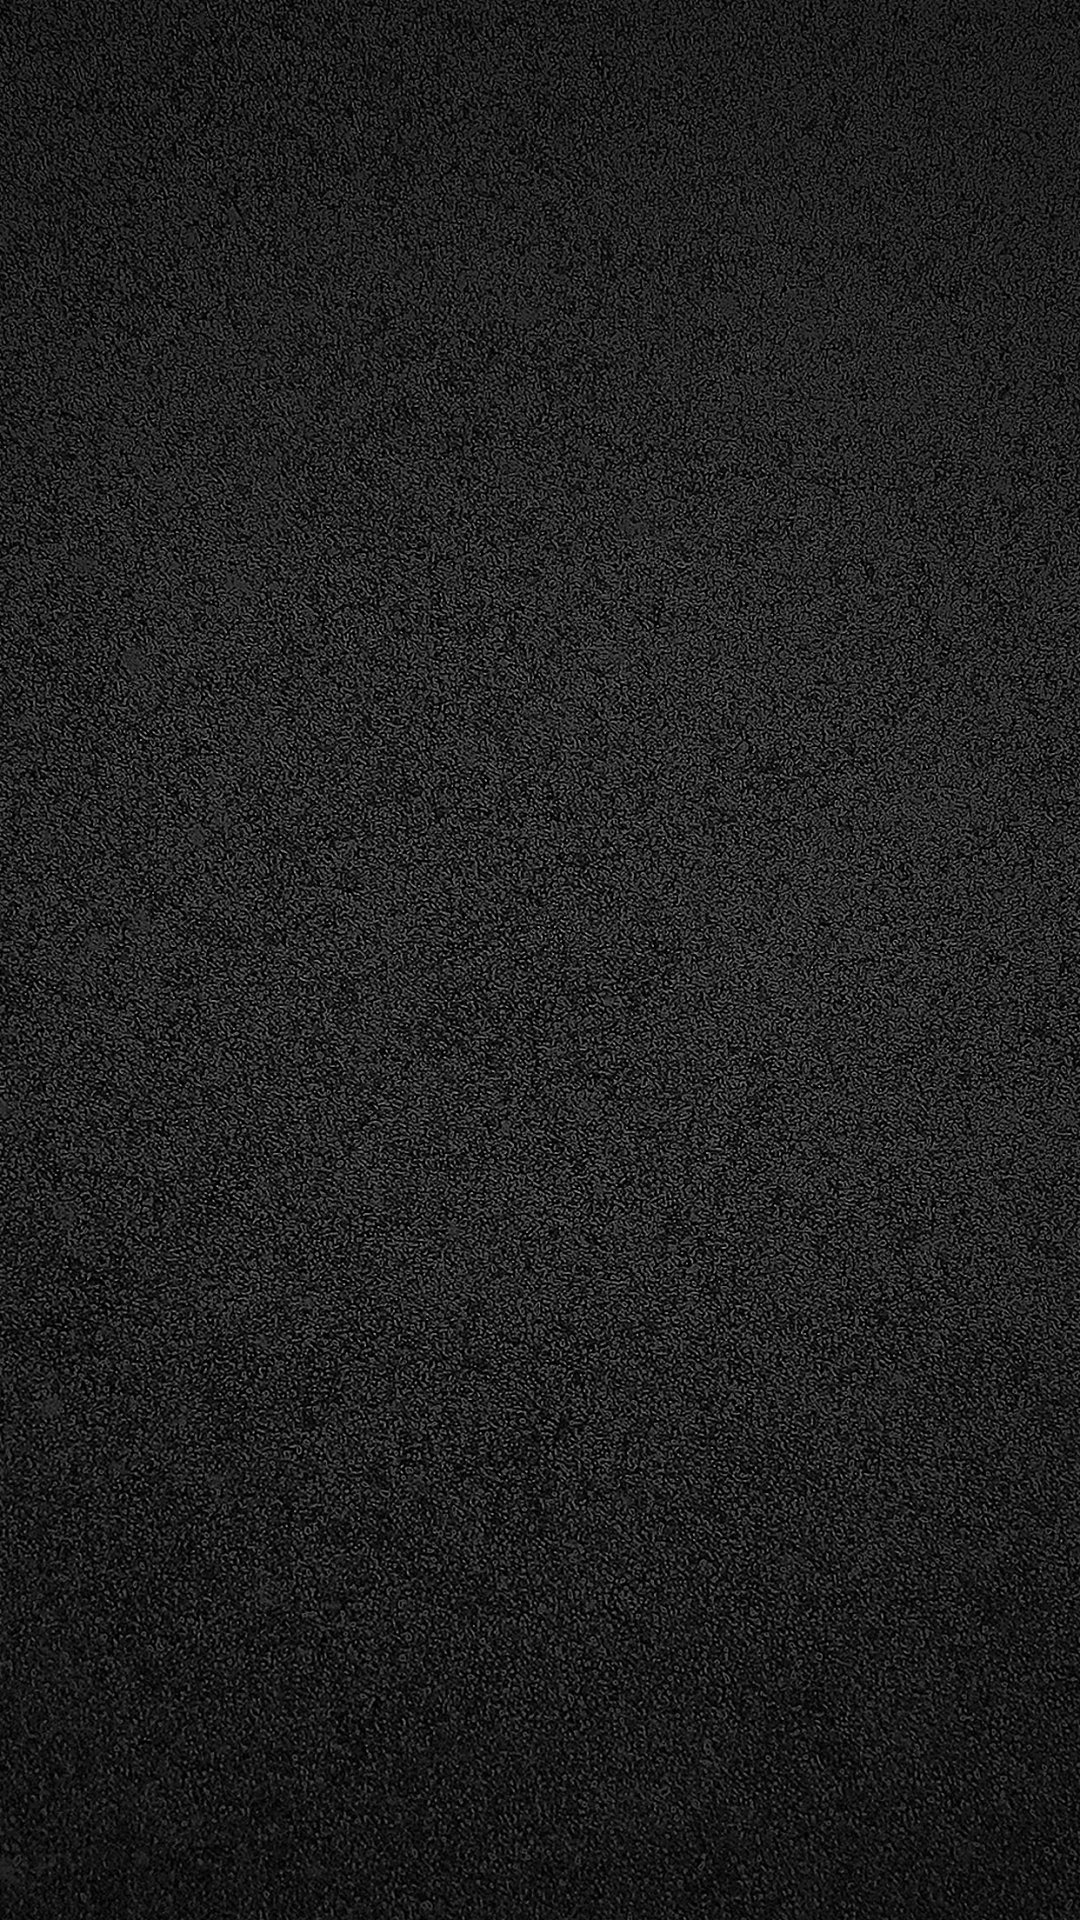 download simple dark wallpaper for iphone 6s plus 1080x1920